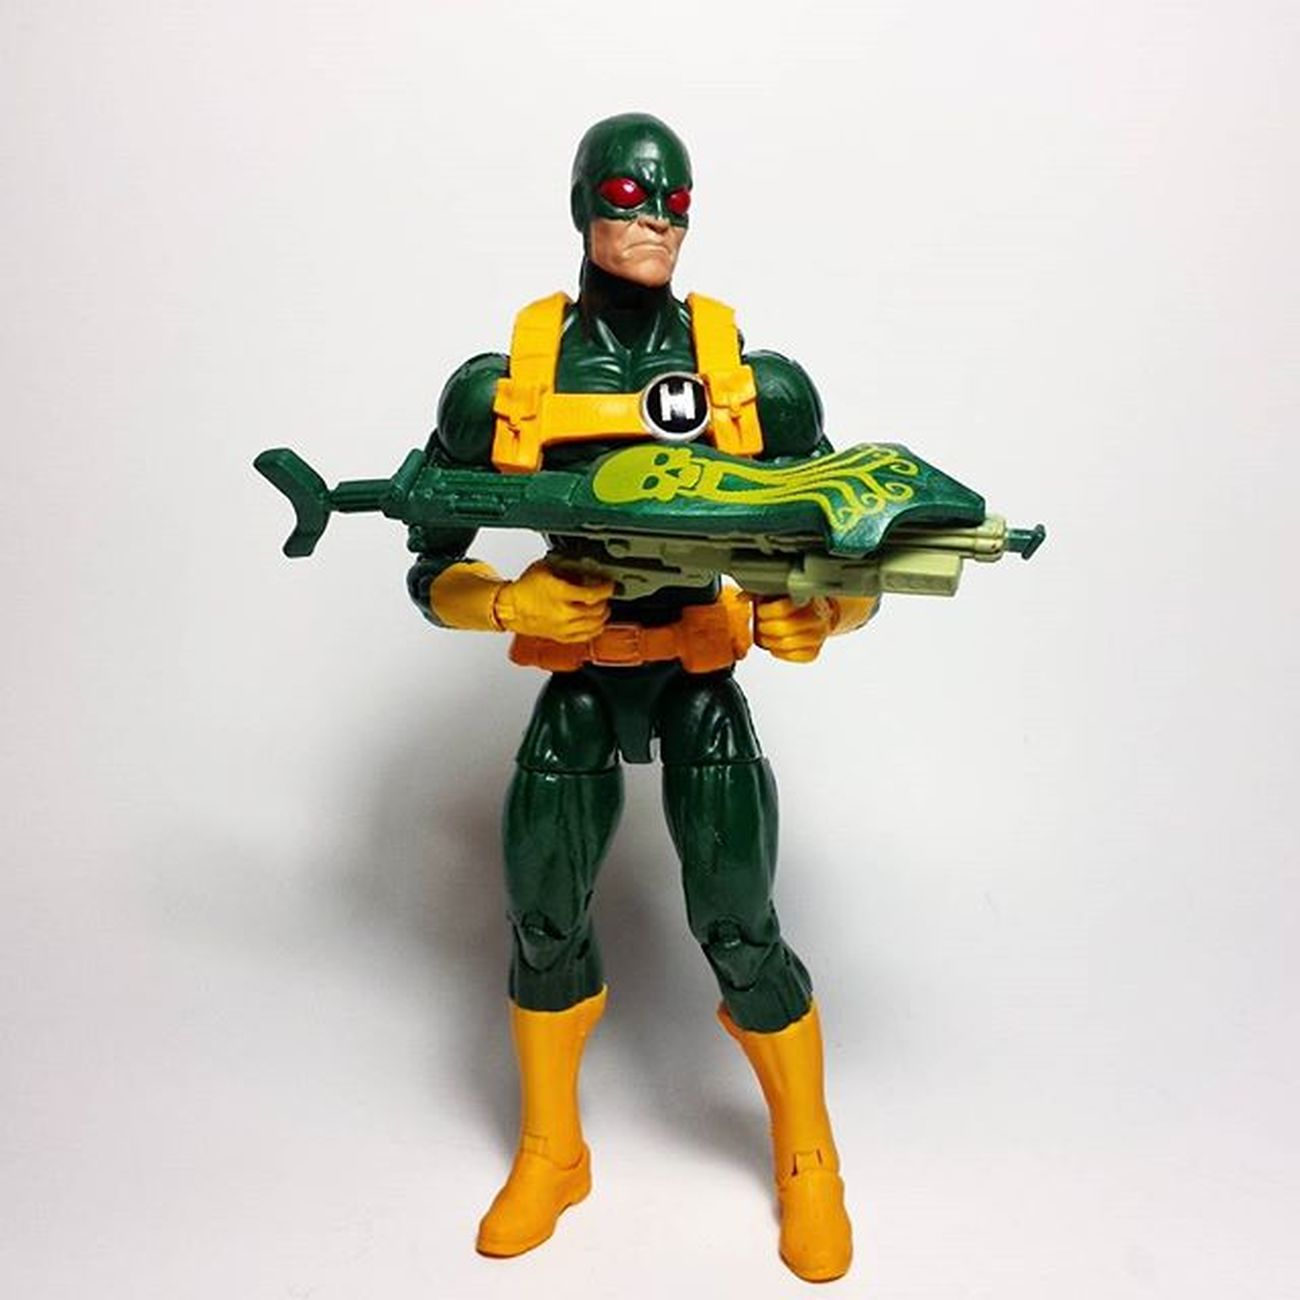 $20 shipped in the US only. Here's one for those army builders. Marvel Marvellegends Marvelcomics Toys Toyphotography Toypizza Toysarehellasick Toycollector Toycommunity Toycollection Toysforsale Toys4sale